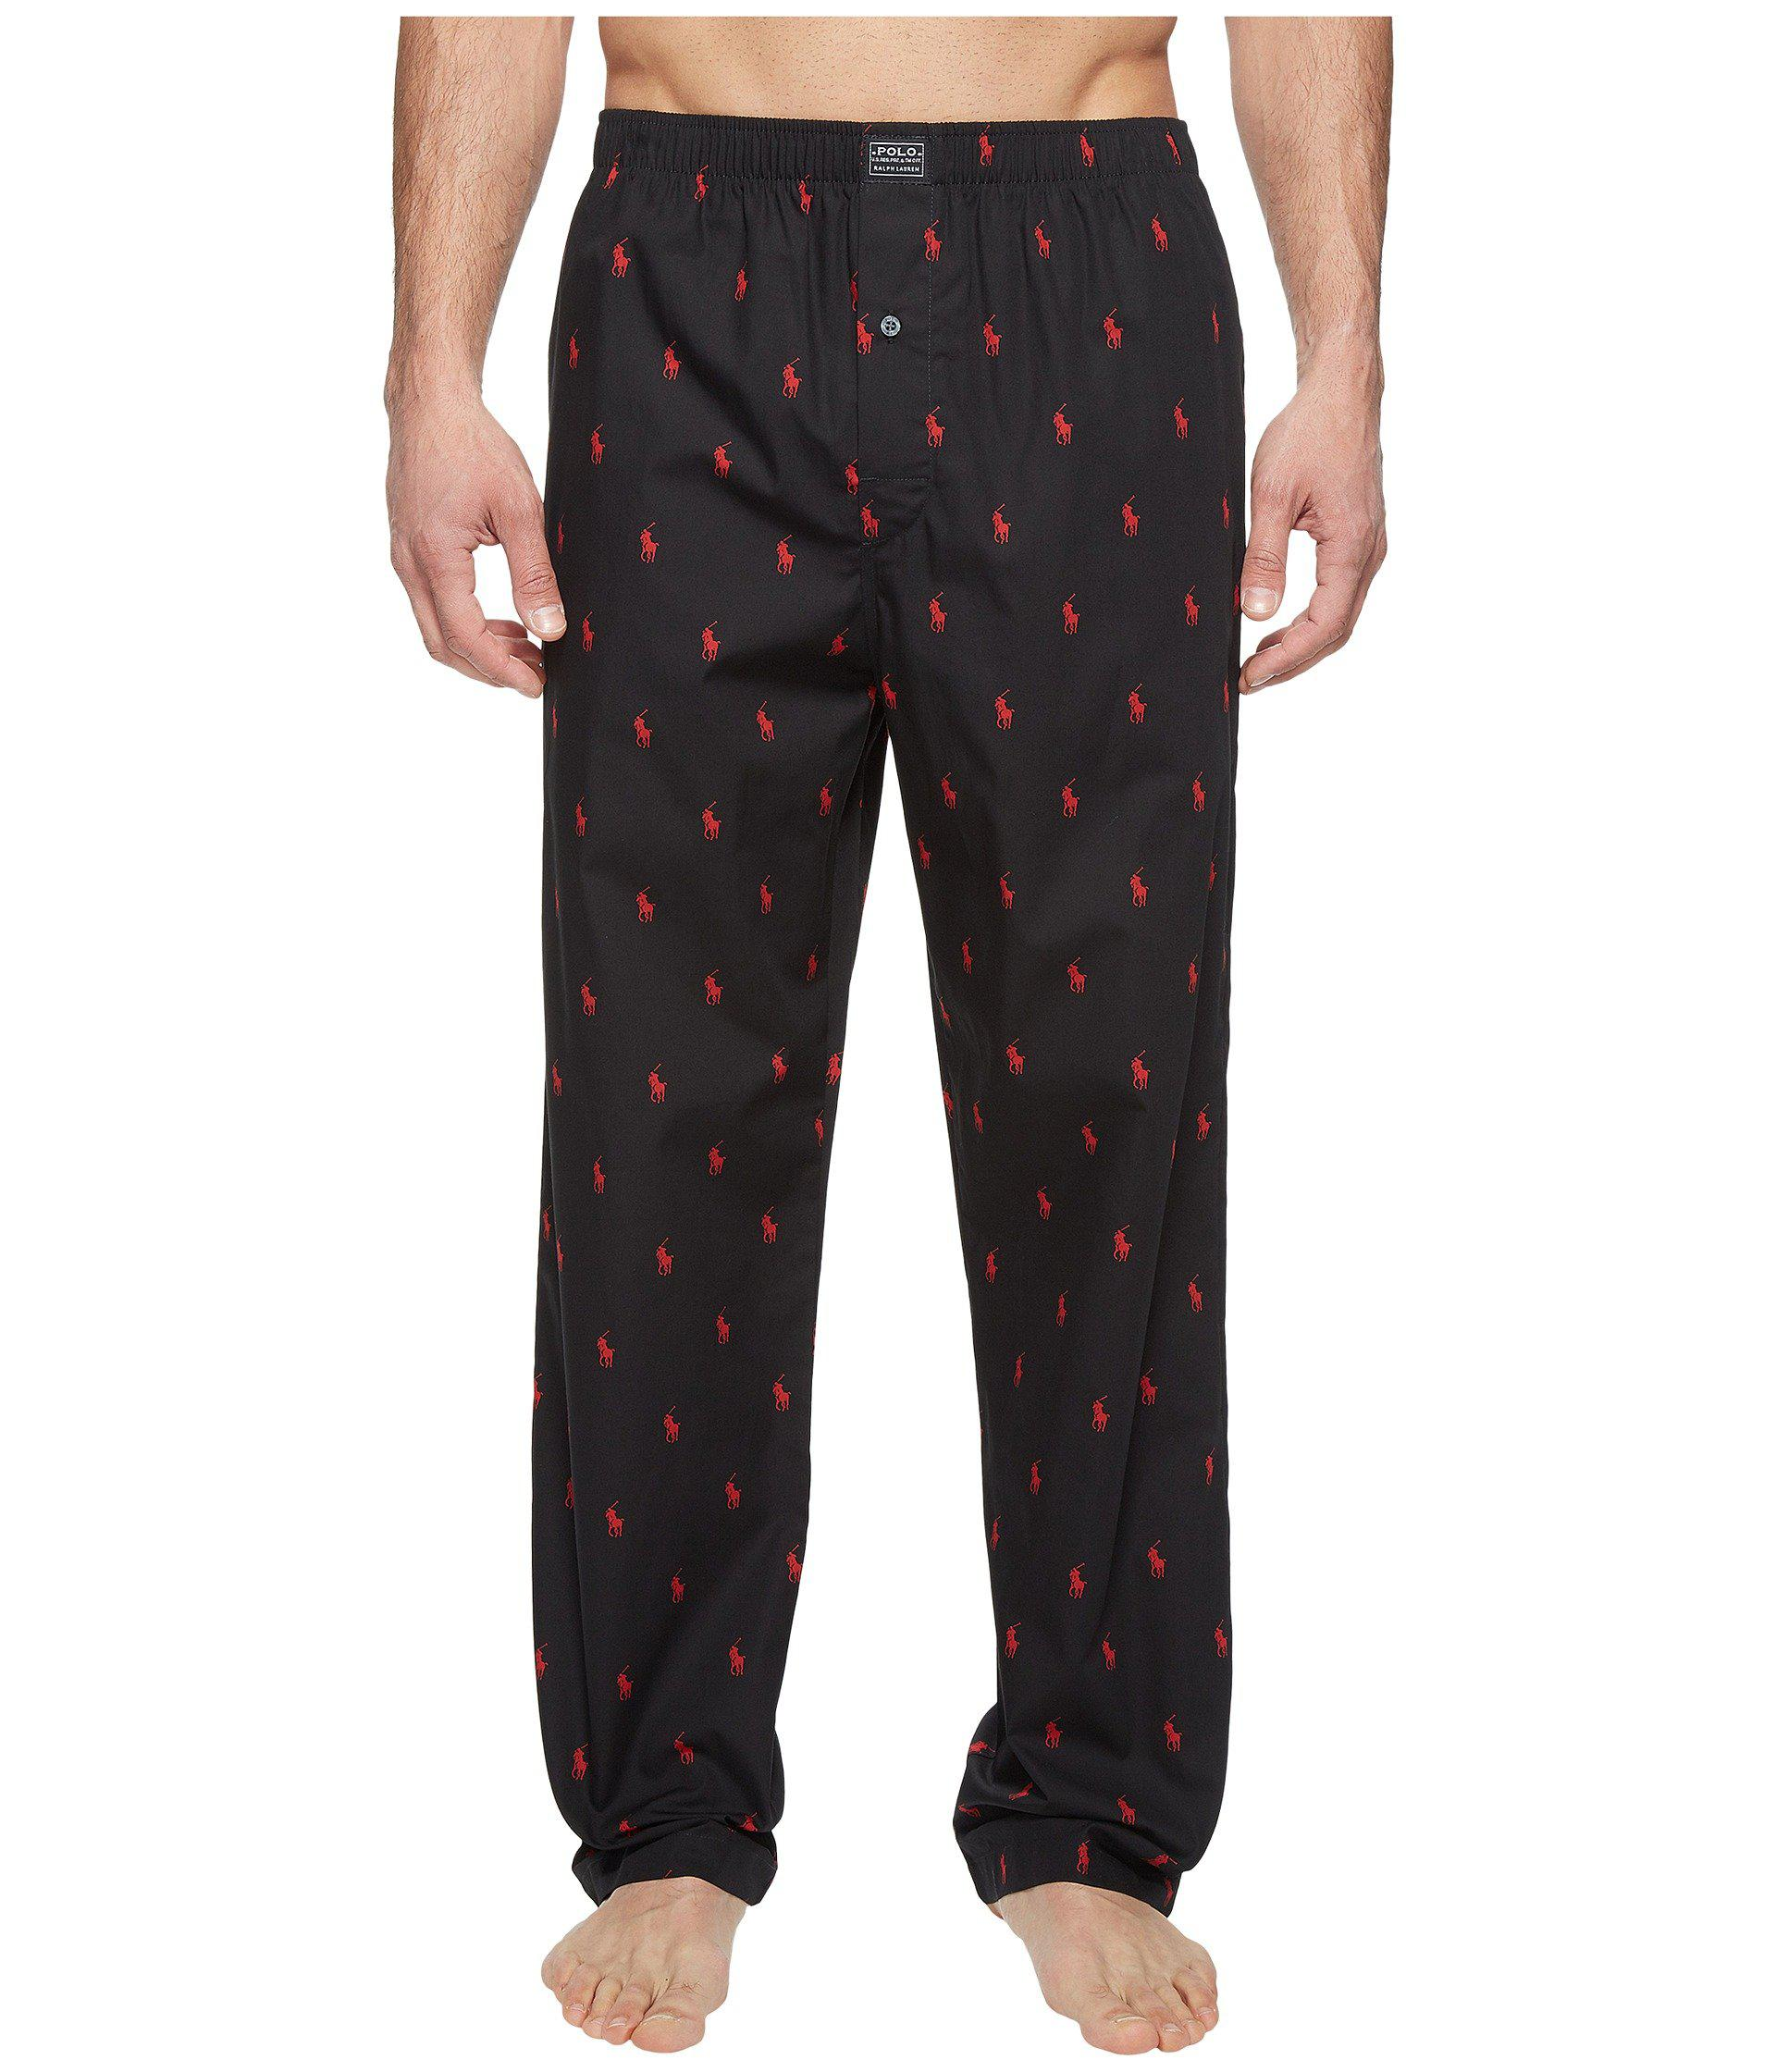 6affedc6d71a Polo Ralph Lauren. All Over Pony Player Woven Pants (polo Black) Men s  Underwear